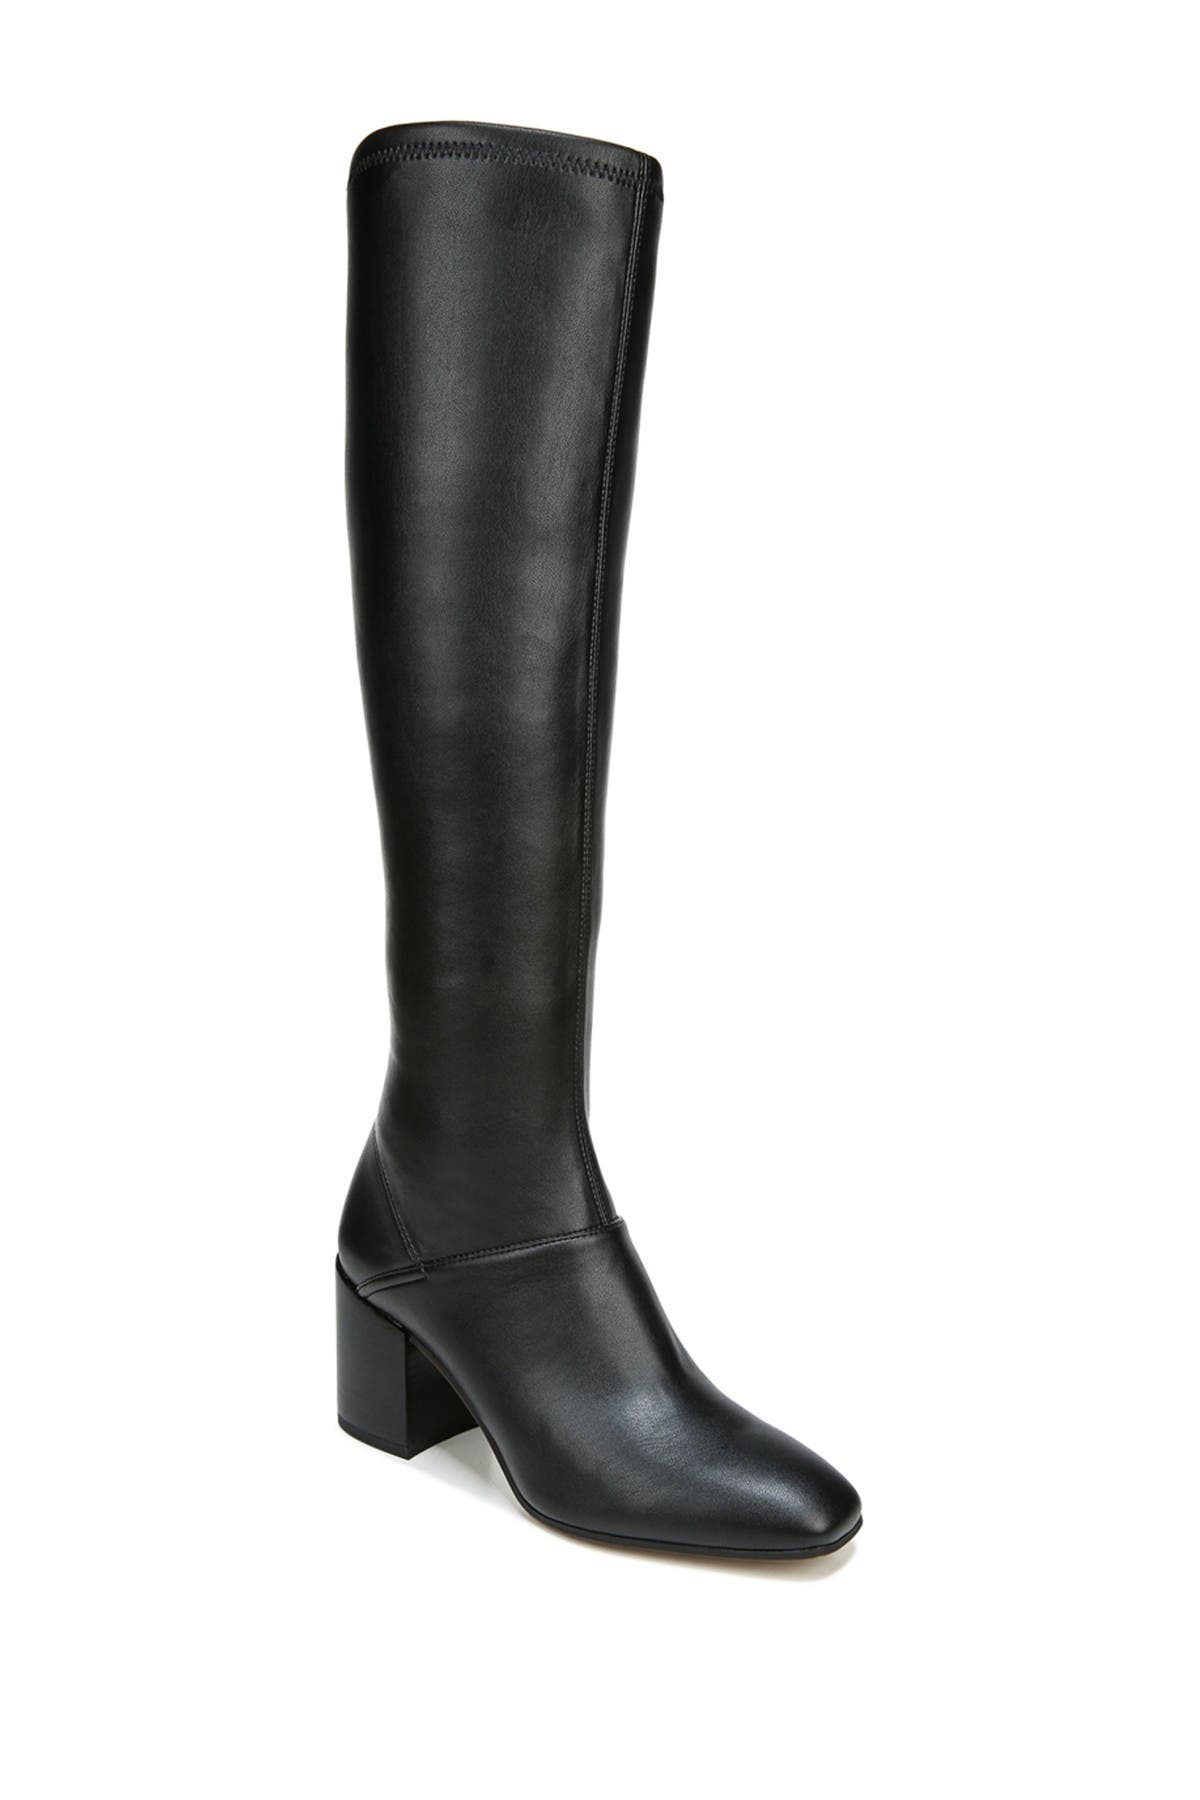 Image of Franco Sarto Tribute Boot